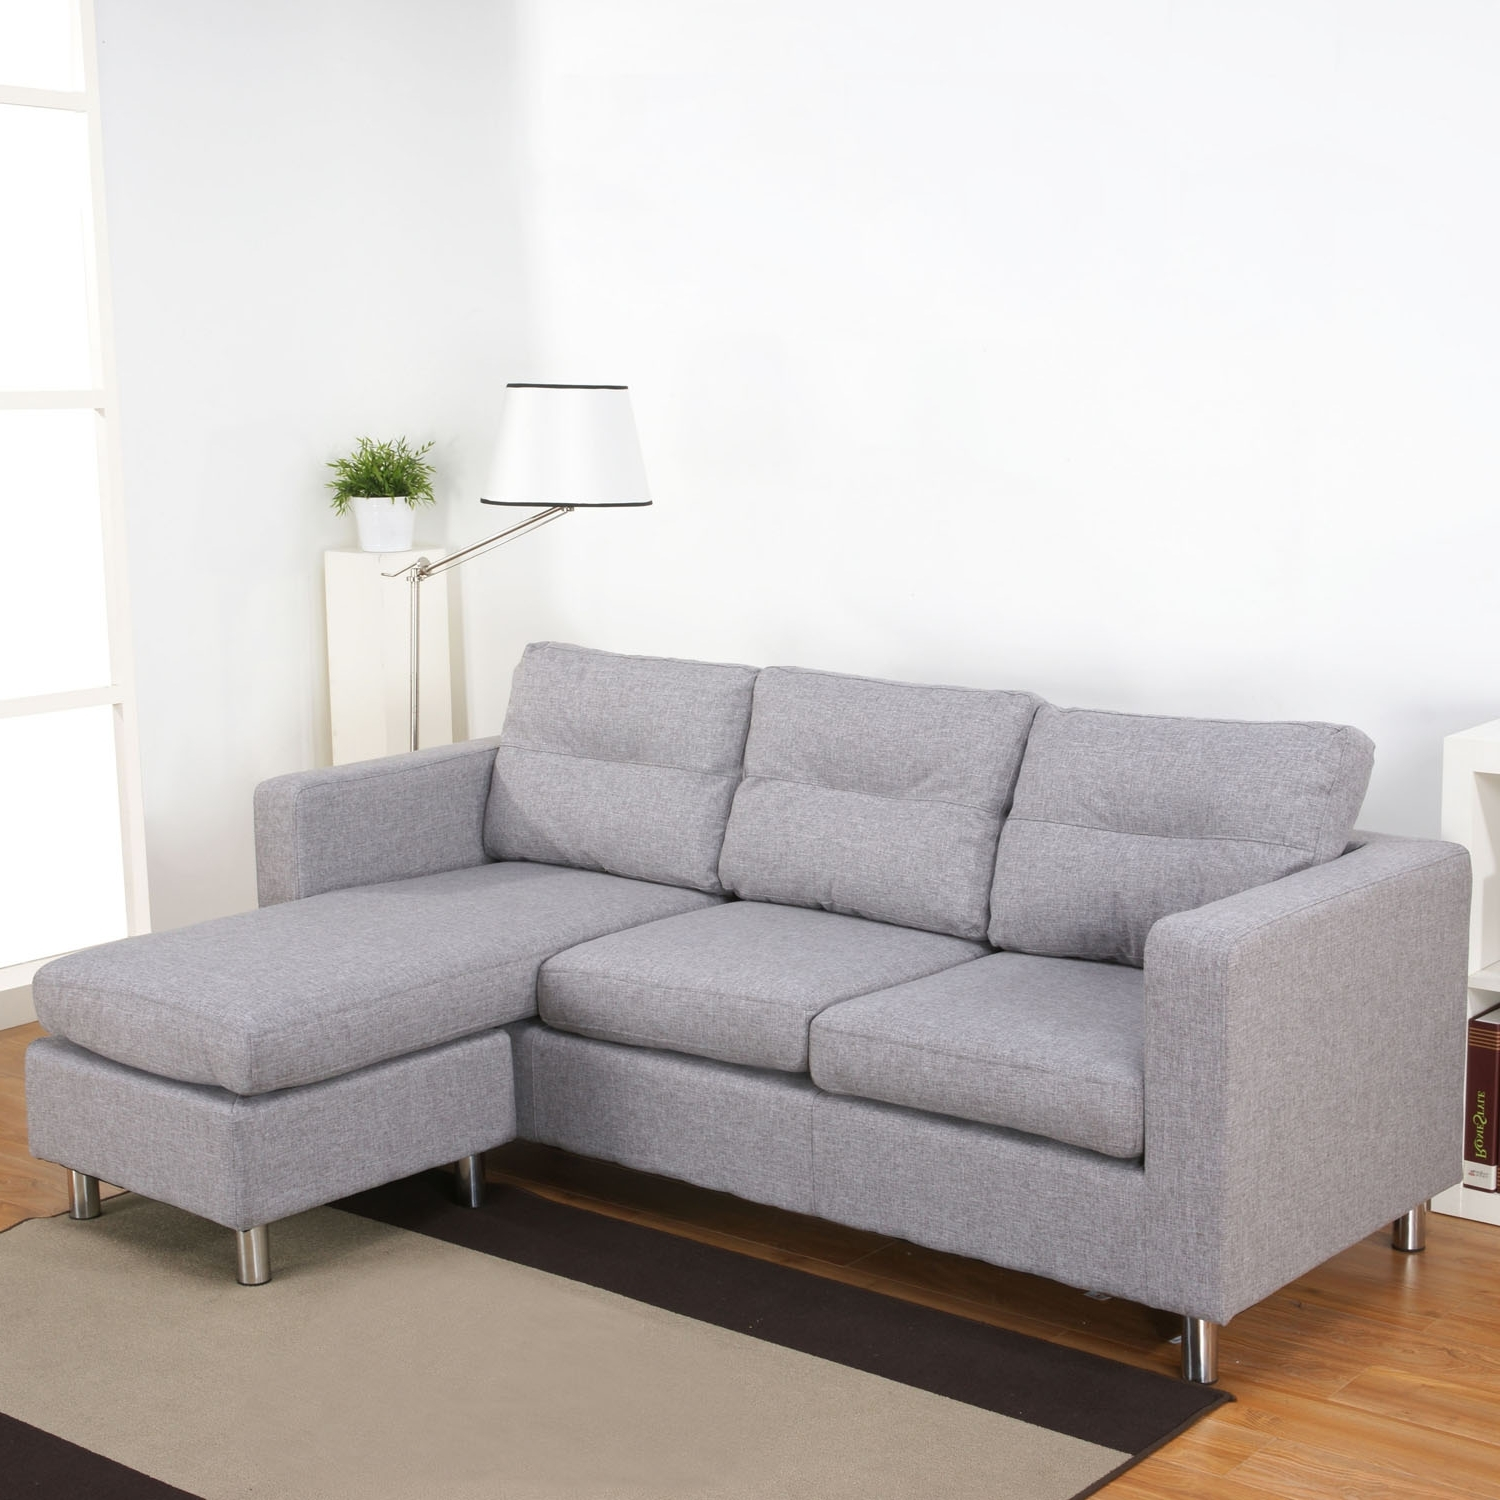 Gray Couches With Chaise For Popular Gray Sectional Sofas With Chaise (View 3 of 15)